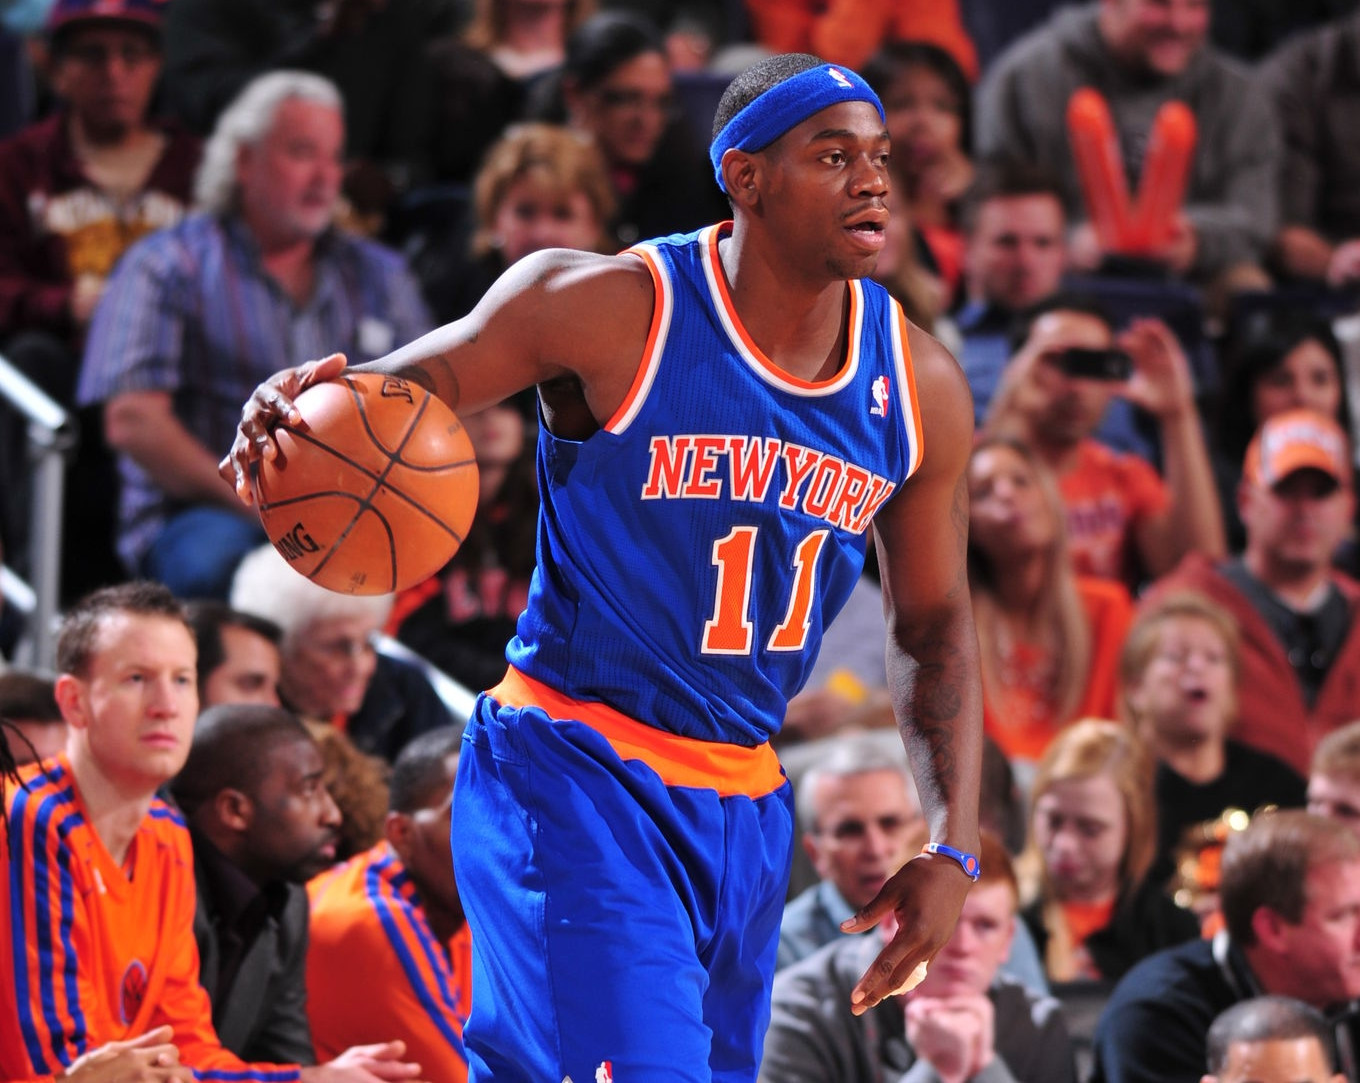 Ronnie Brewer, New York Knicks